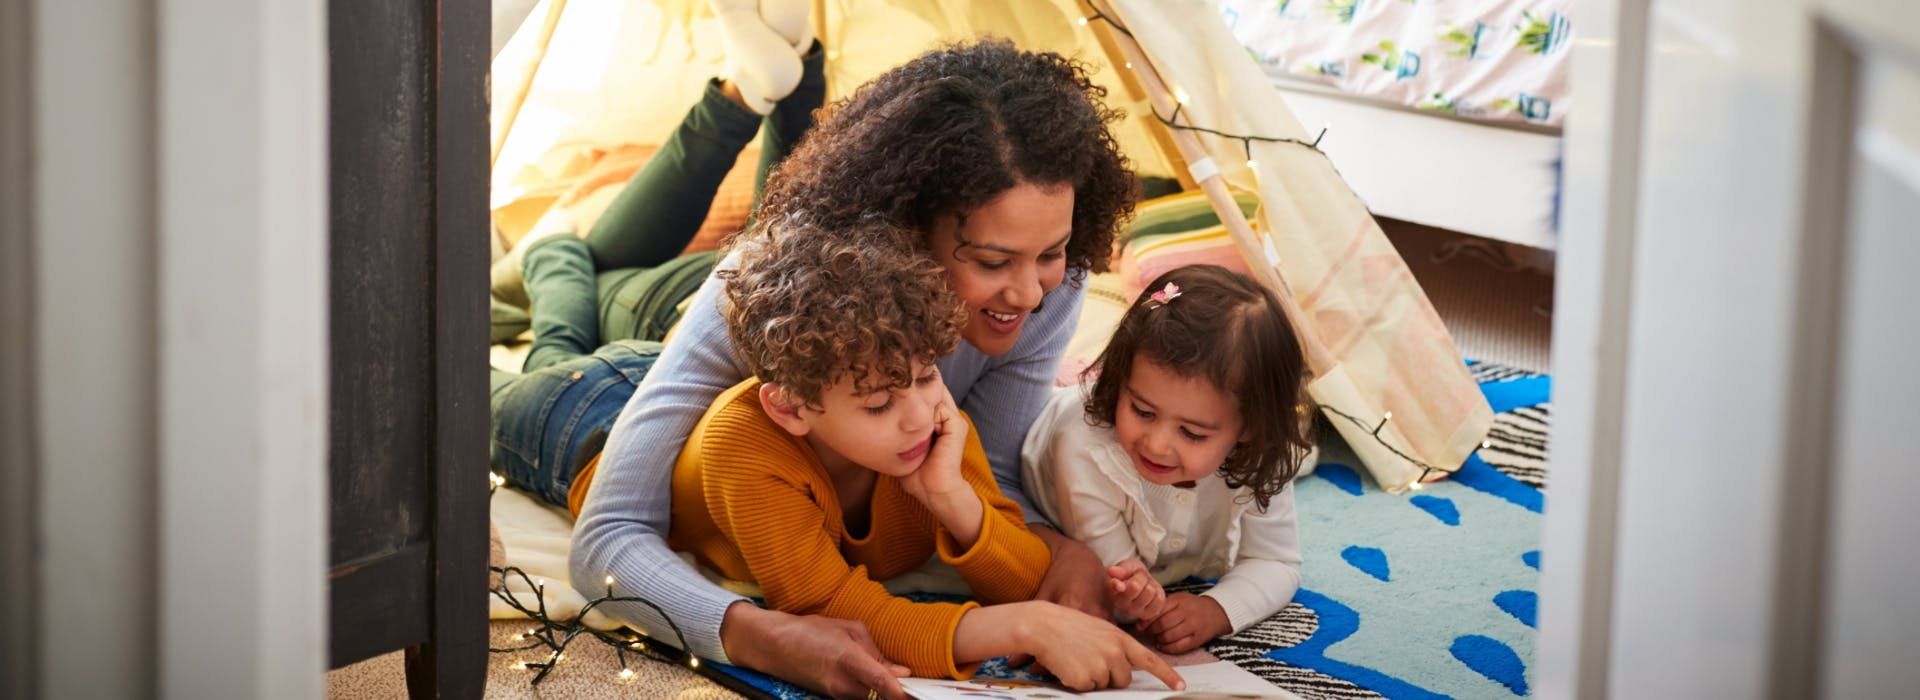 Mum reading a book to her two kids in makeshift tent